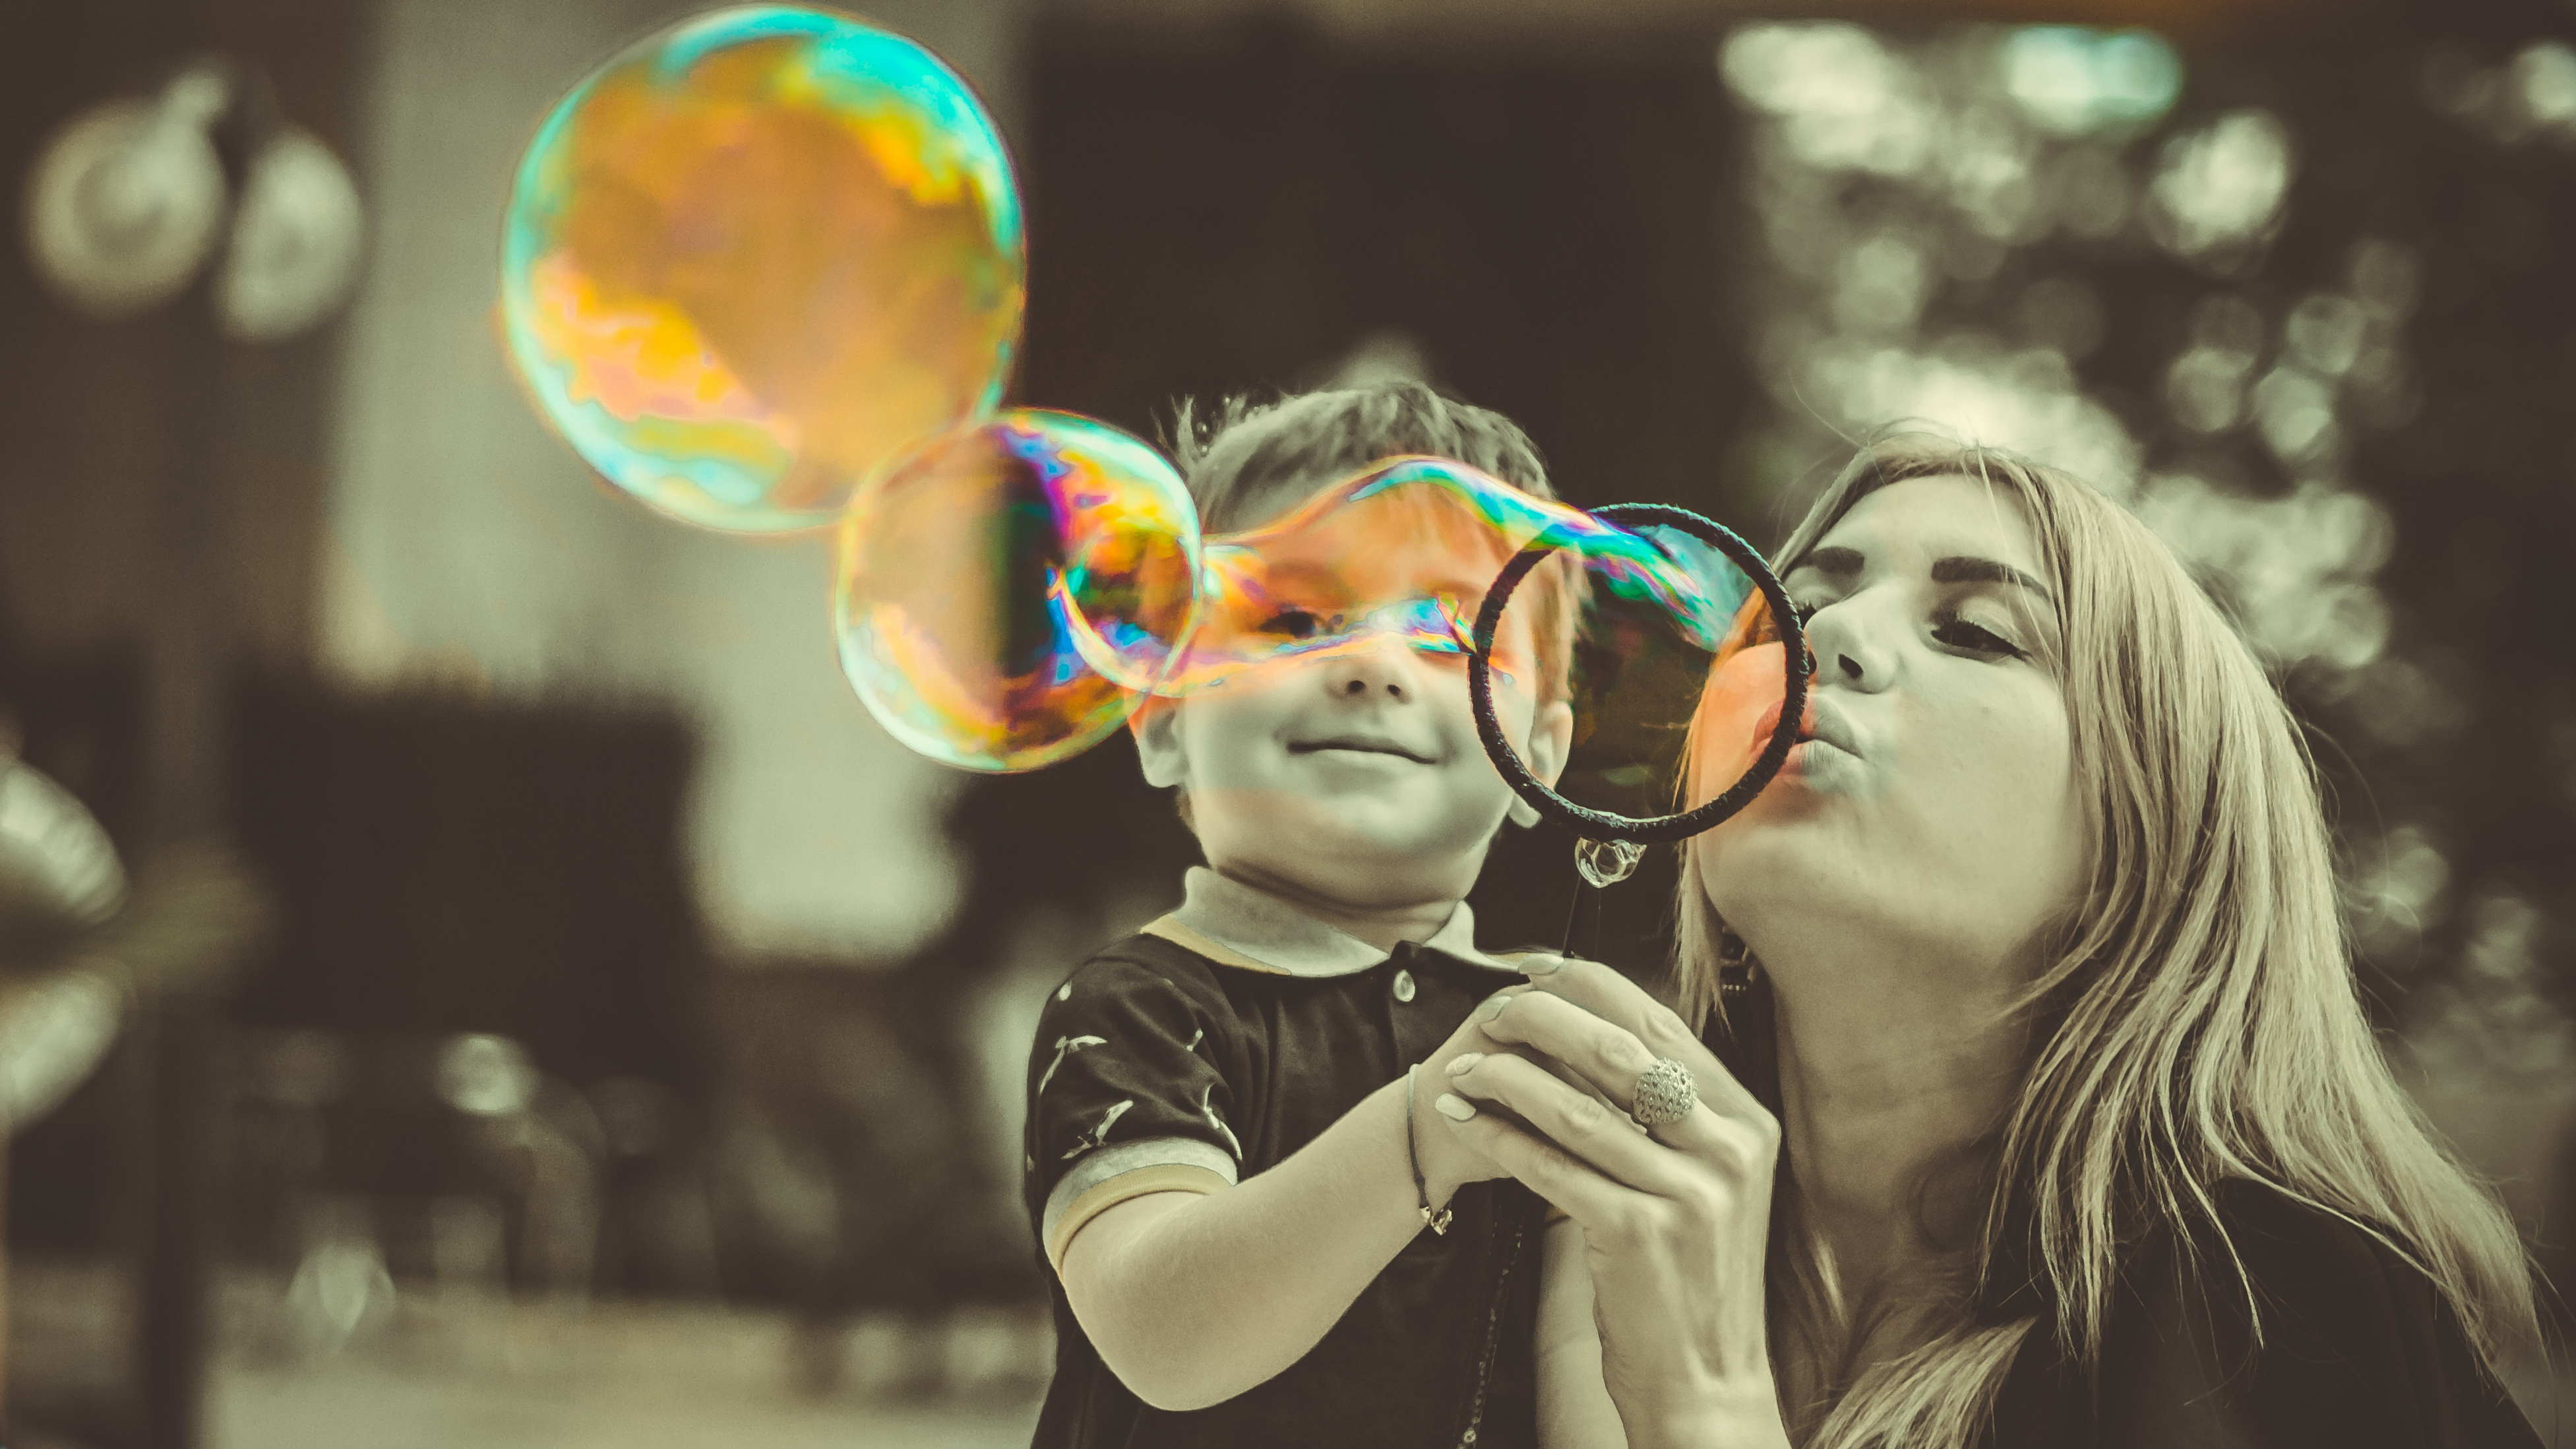 Mother love, family, mom, bubbles